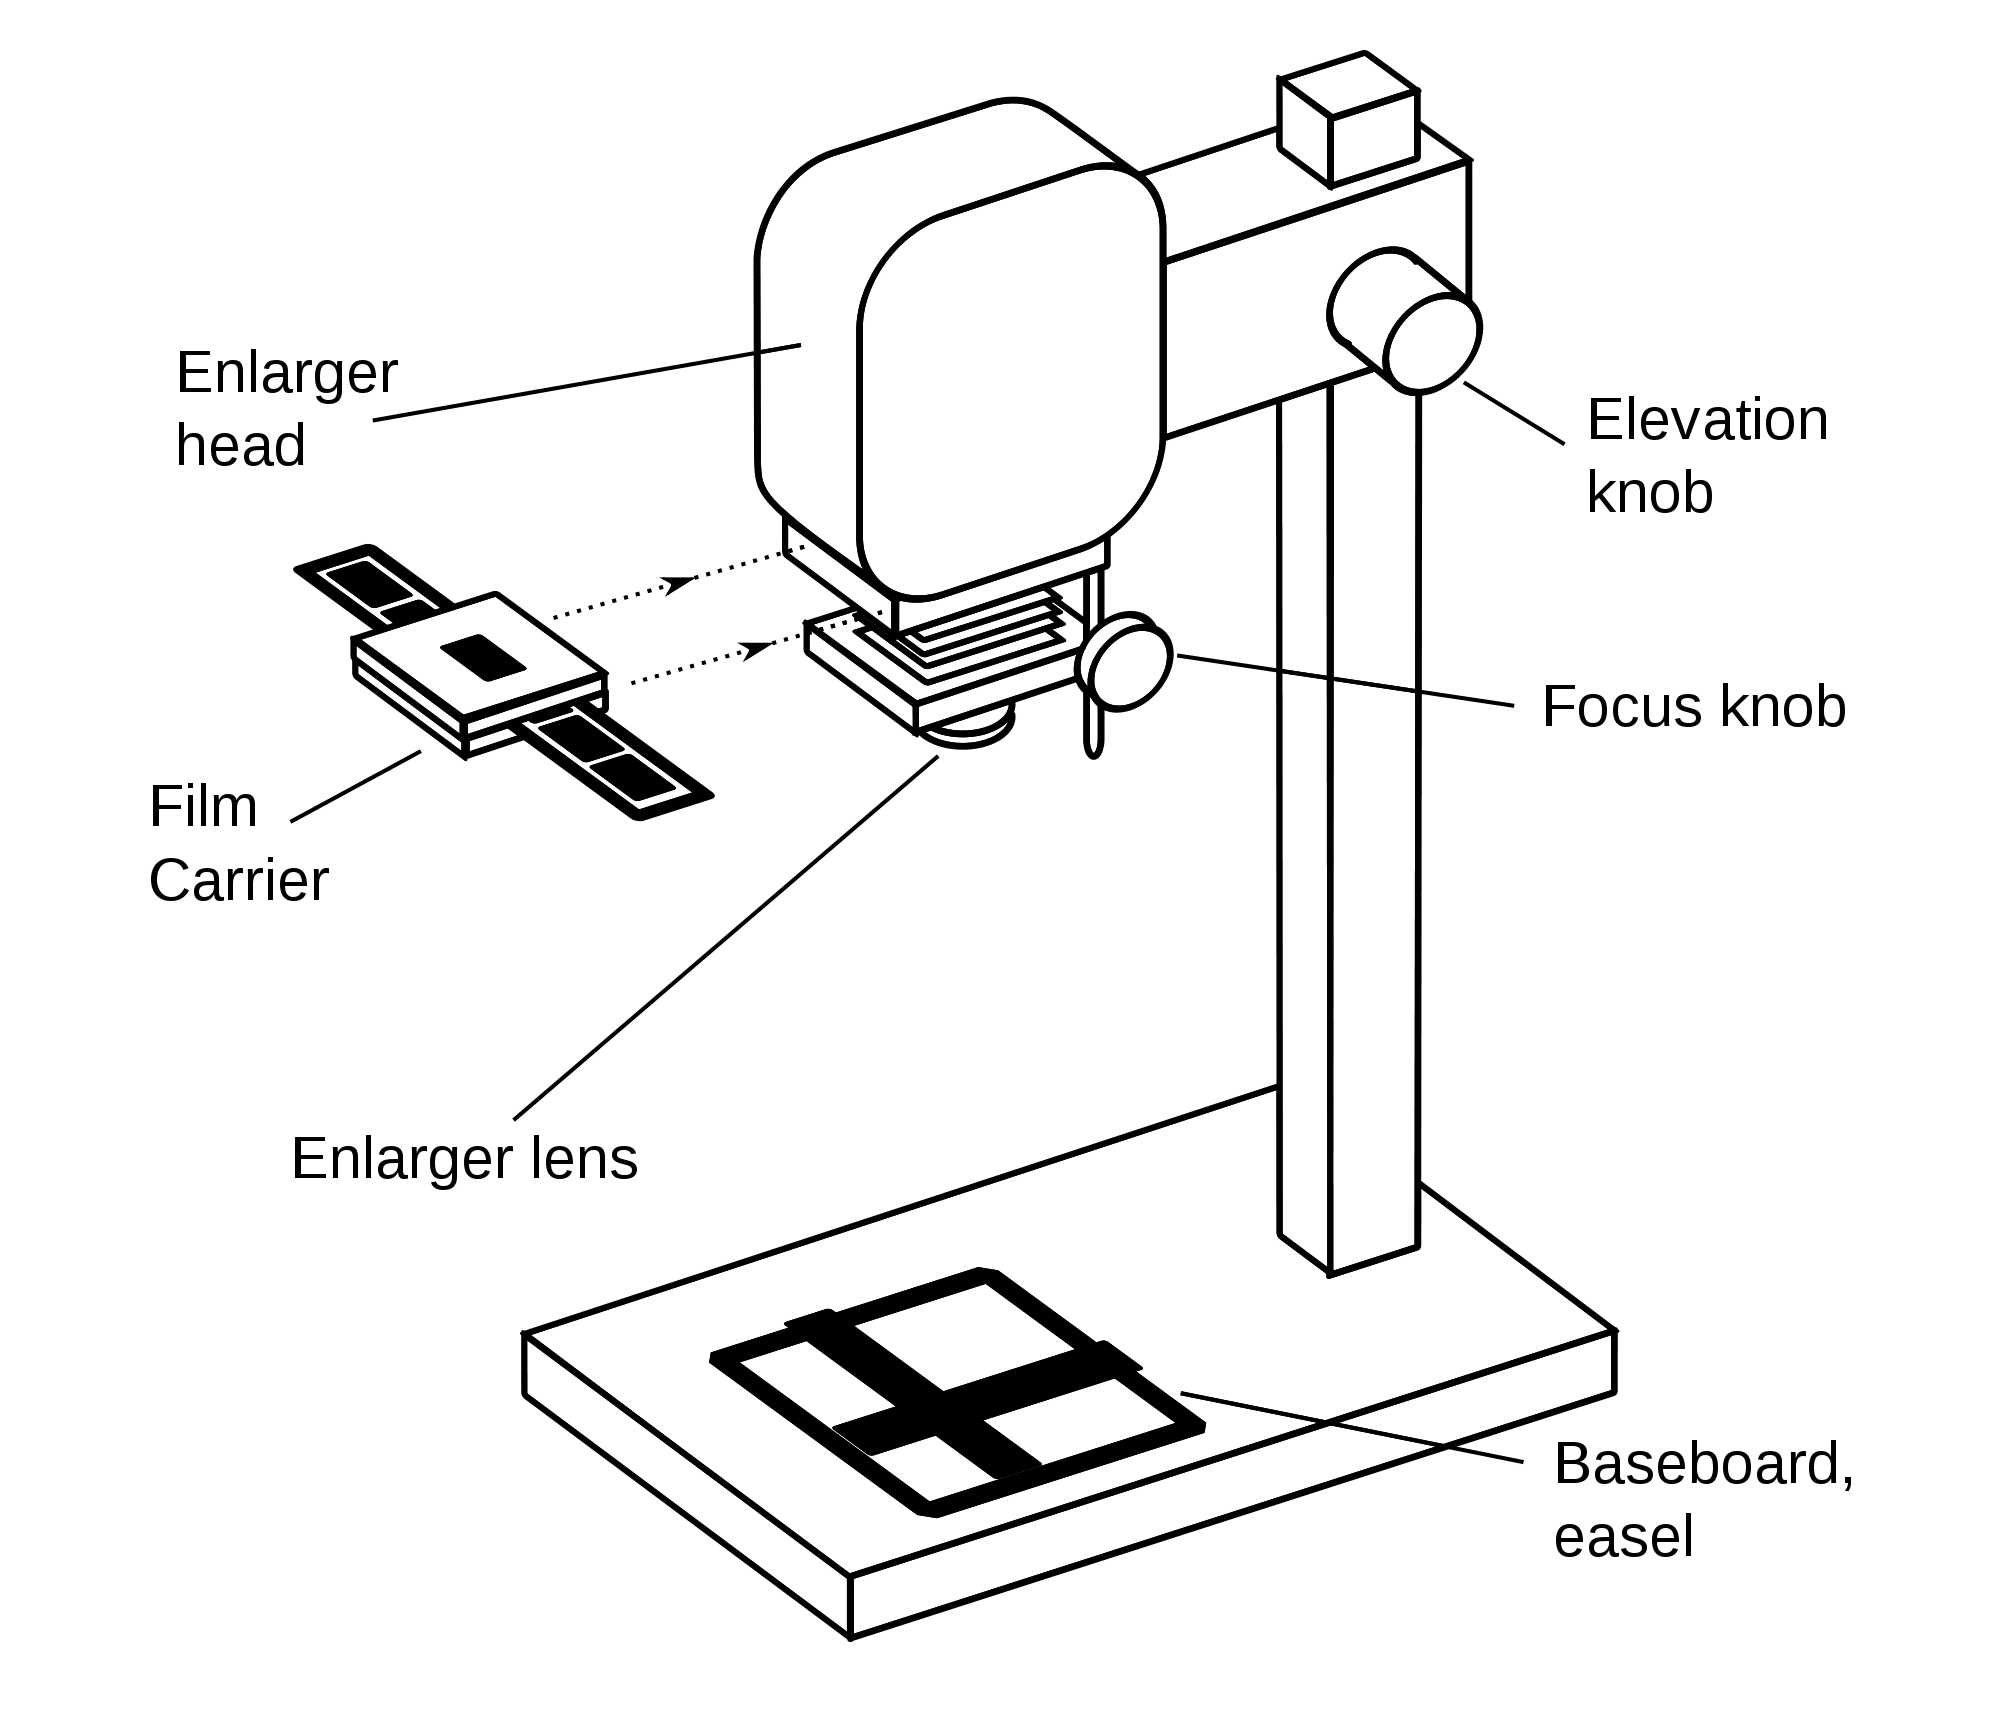 the 10 steps to build a darkroom on a budget apogee photo magazine Hot Water Baseboard Heating Supplies darkroomenlarger